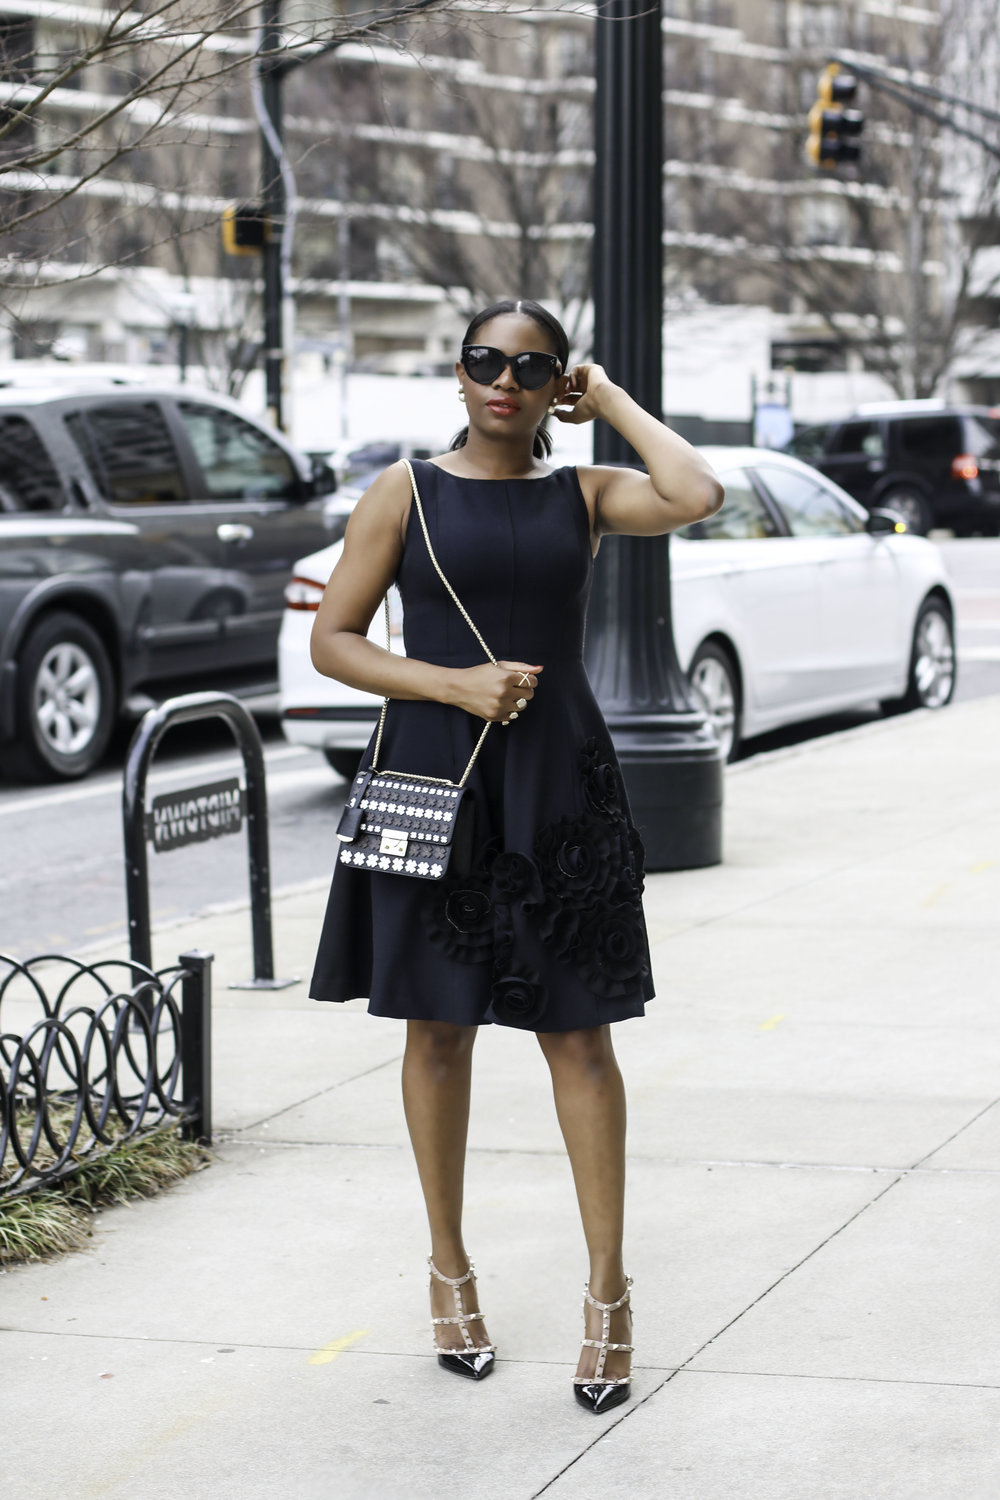 FASHION BLOGGER IN THE PERFECT BLACK DRESS.jpg